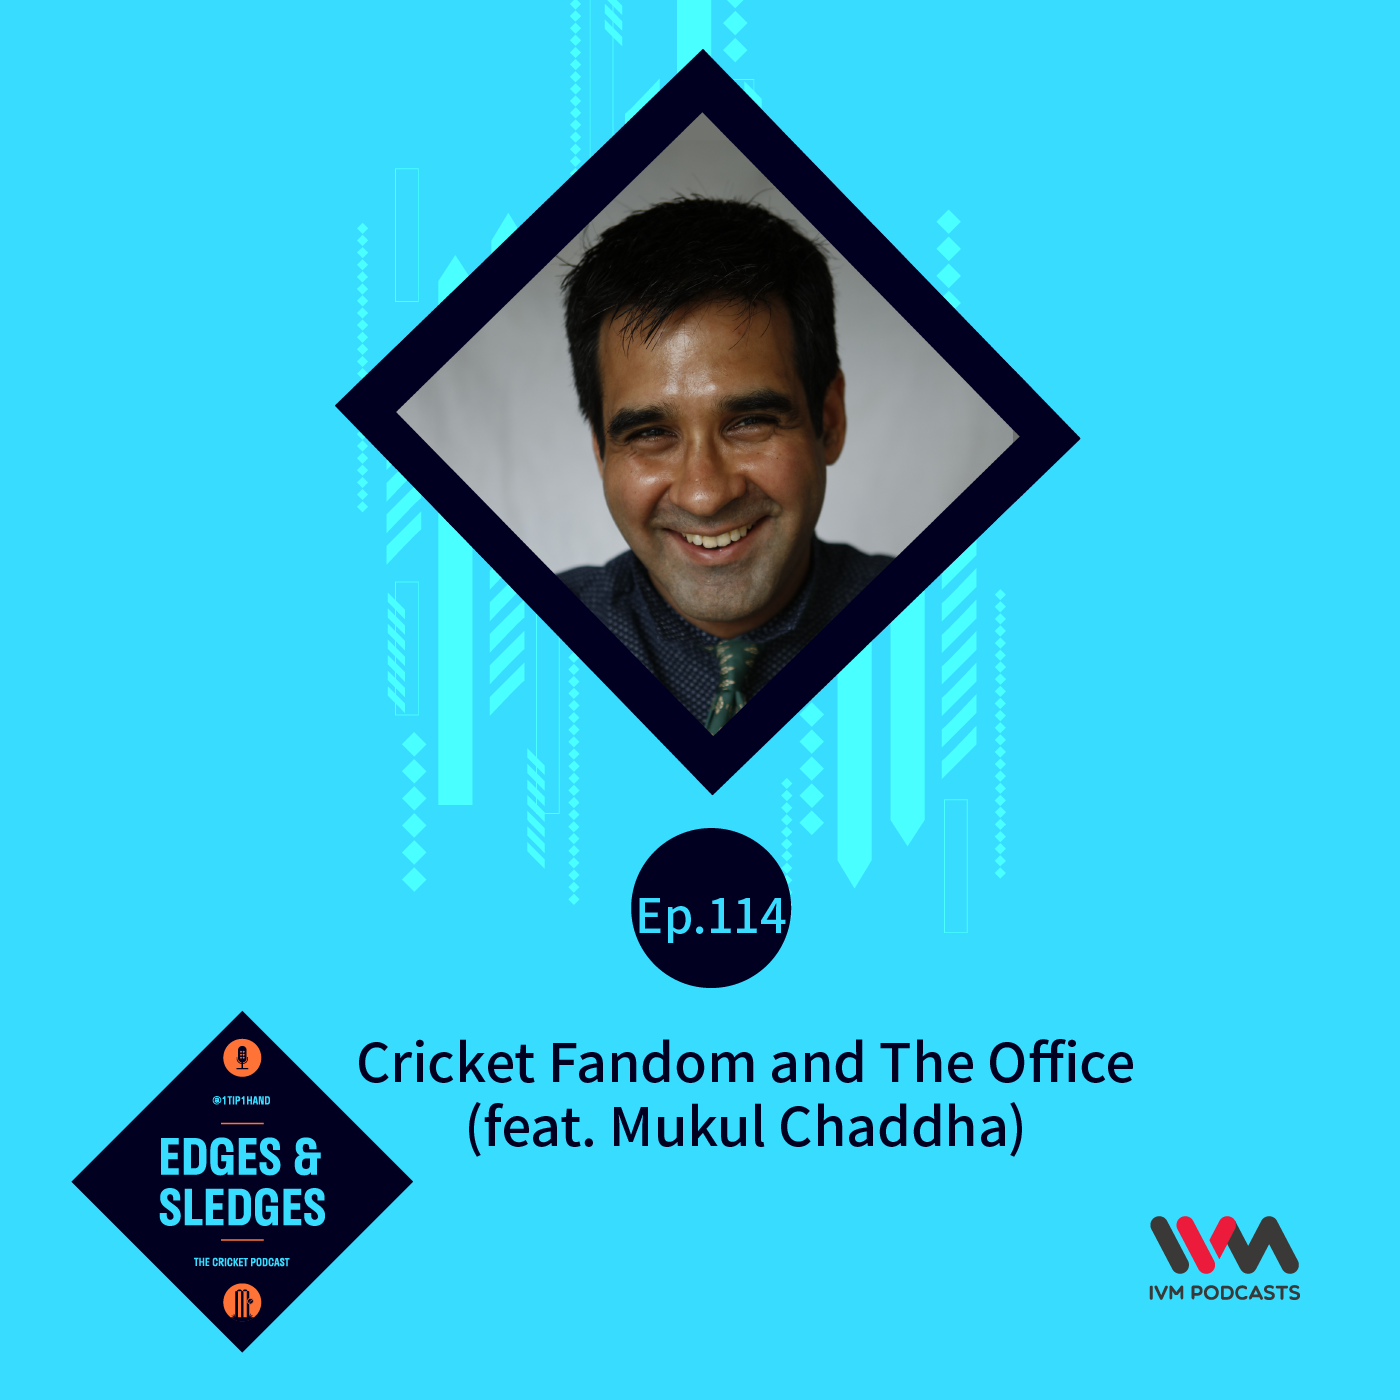 Ep. 114: Cricket Fandom and The Office (feat. Mukul Chaddha)